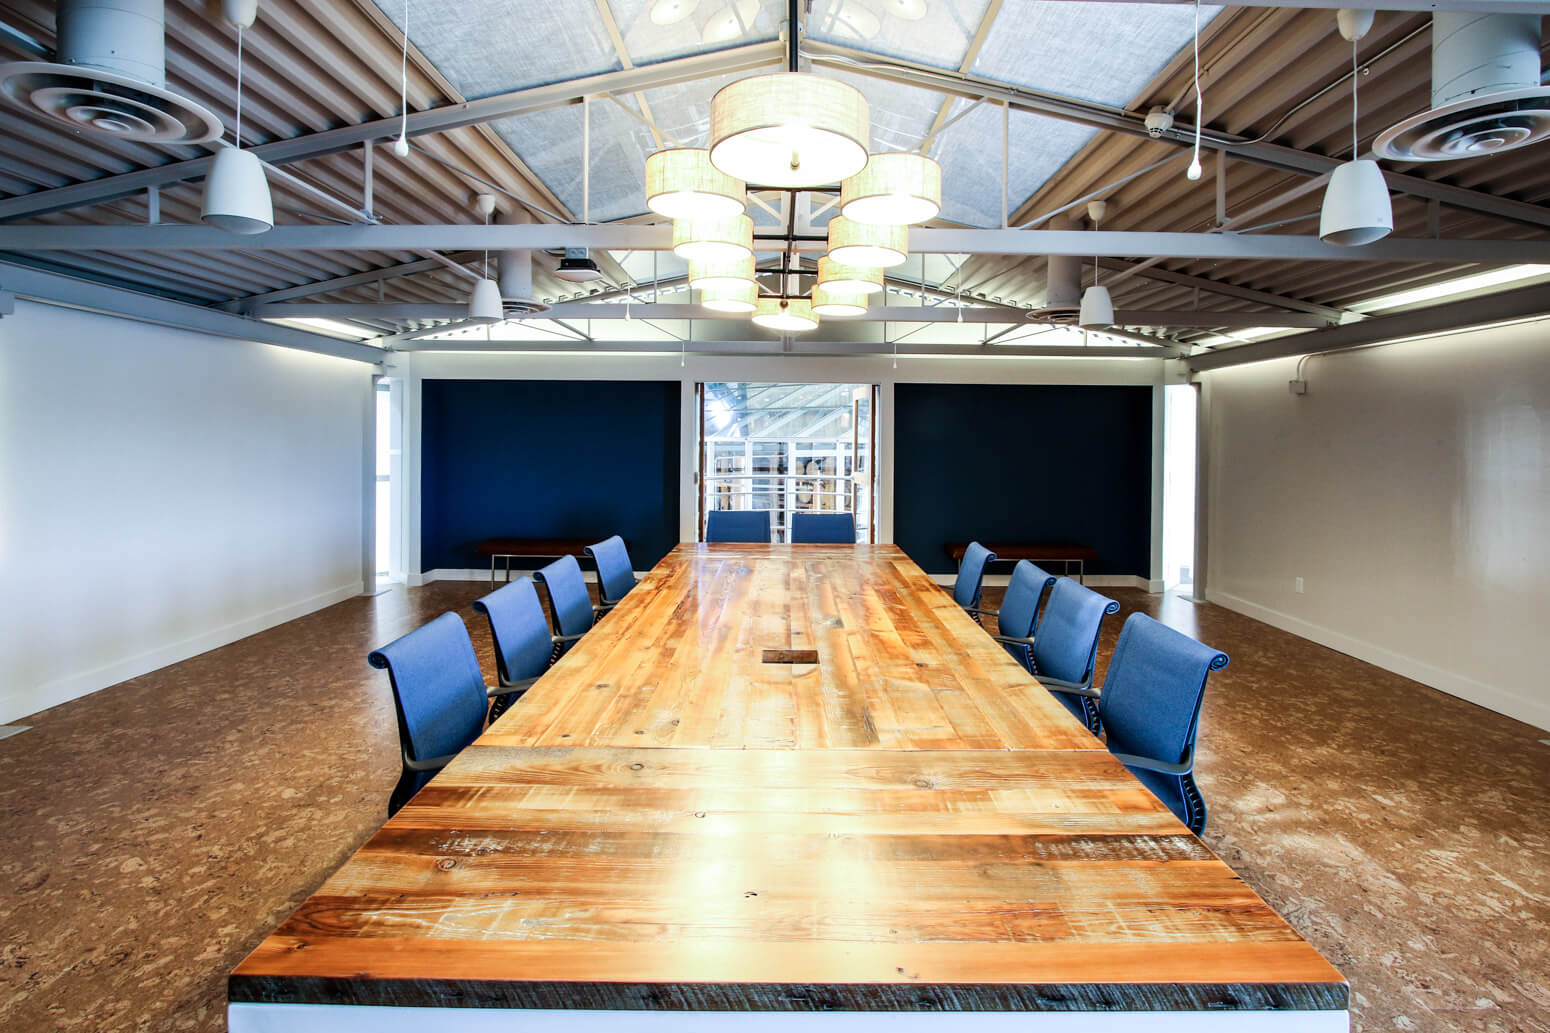 Shopify Waterloo Office Killer Spaces-20